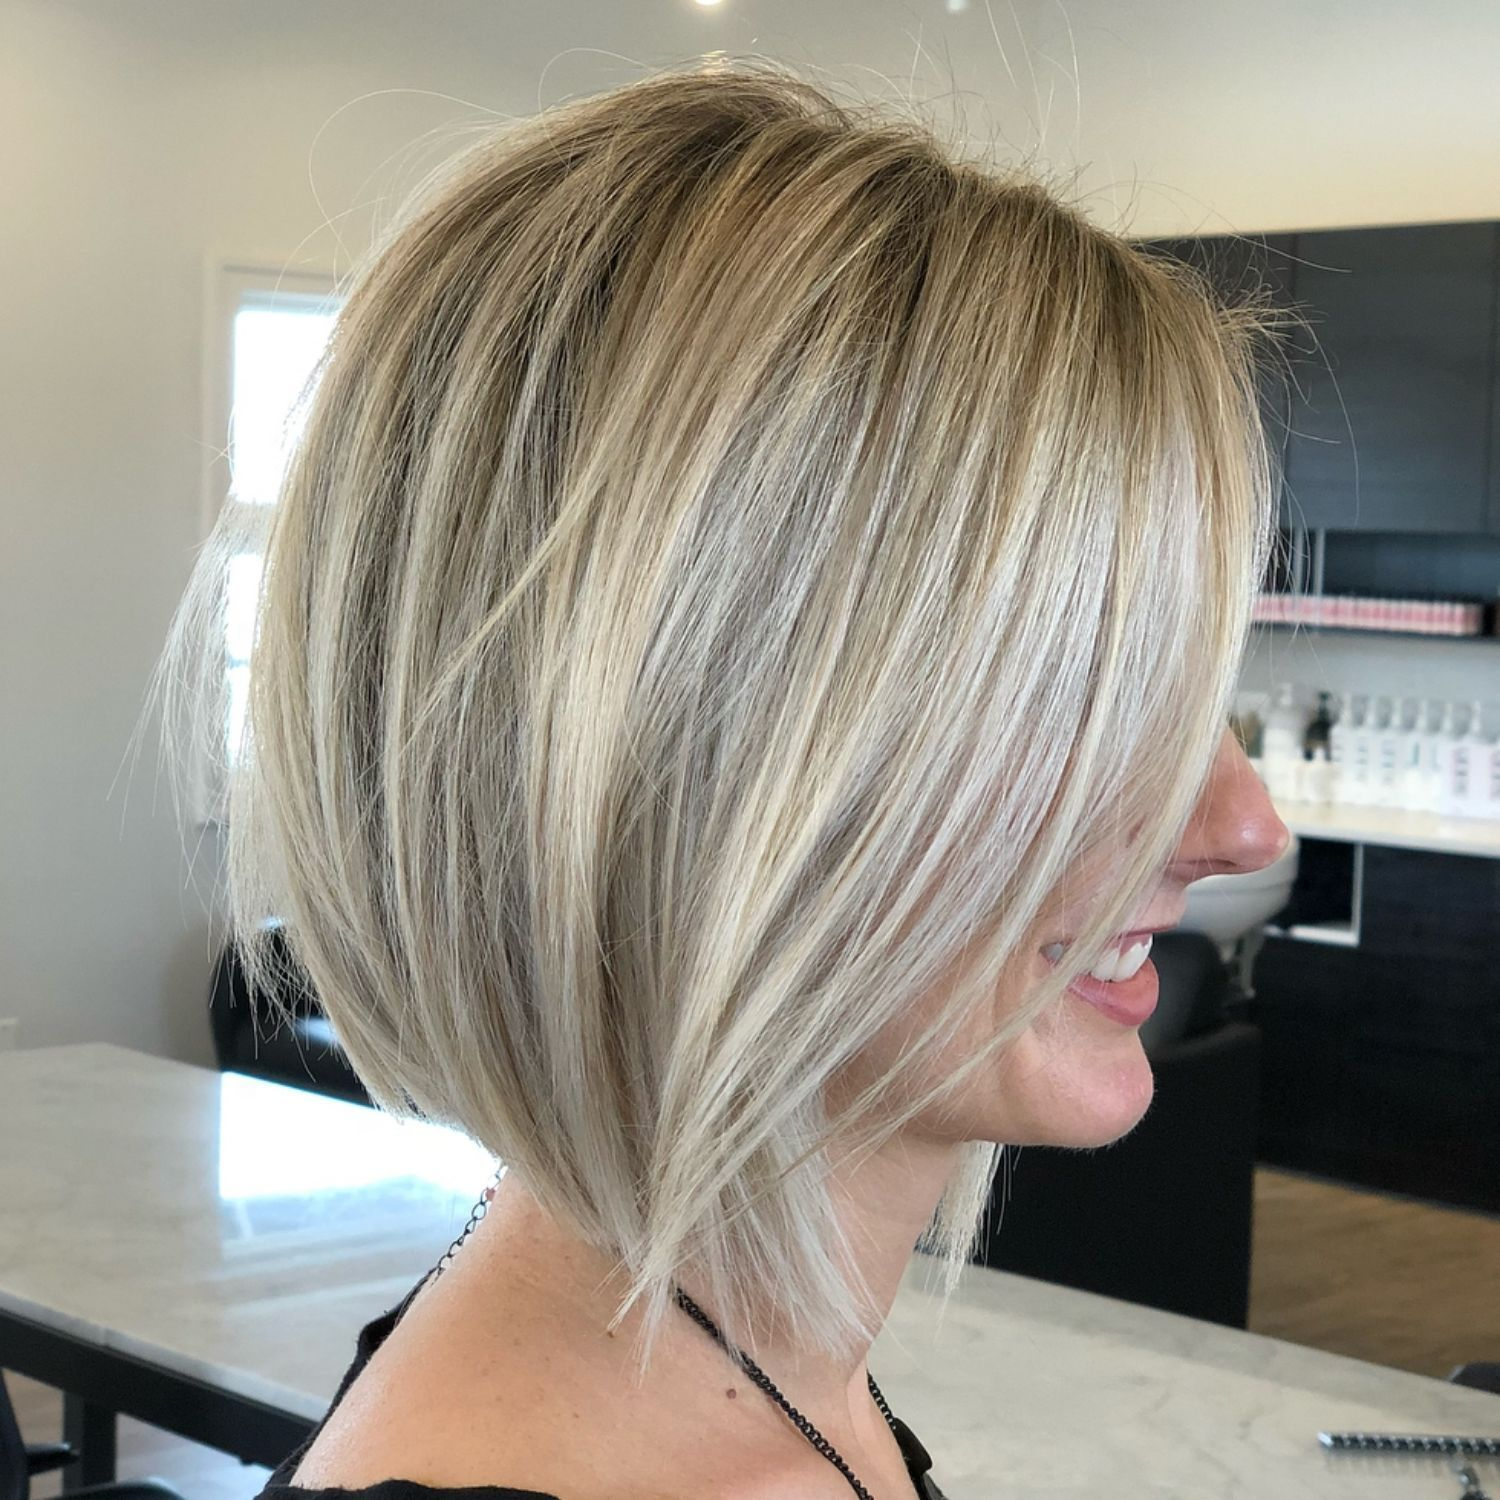 70 Best A-Line Bob Hairstyles Screaming with Class and Style | Blonde balayage bob, Balayage ...